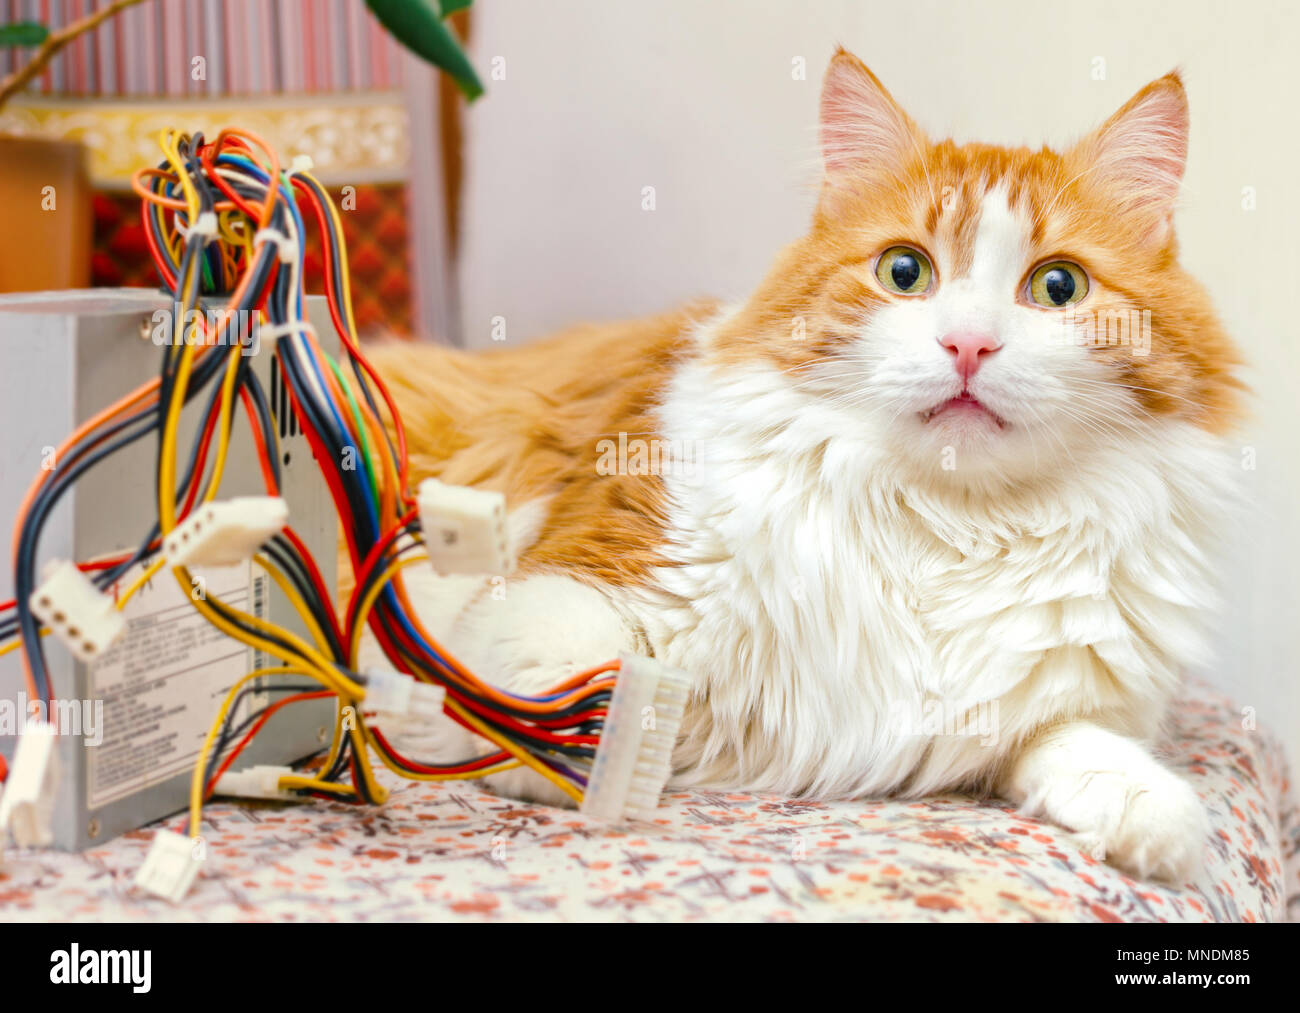 Pretty adult red cat and computer wires in bright home interior ...